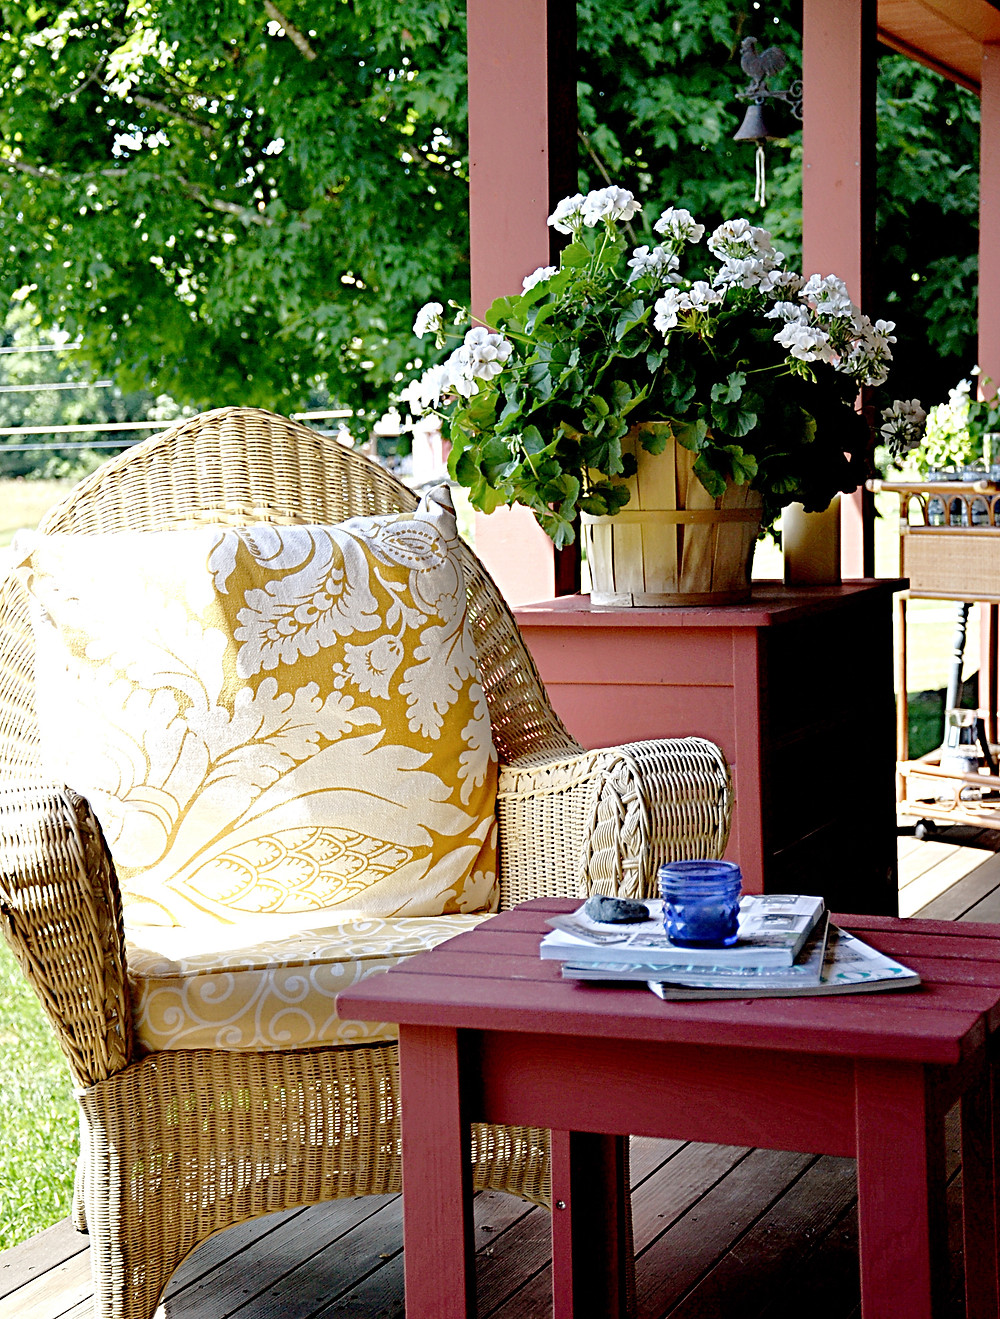 Wicker chair with magazines and flowers on the porch.